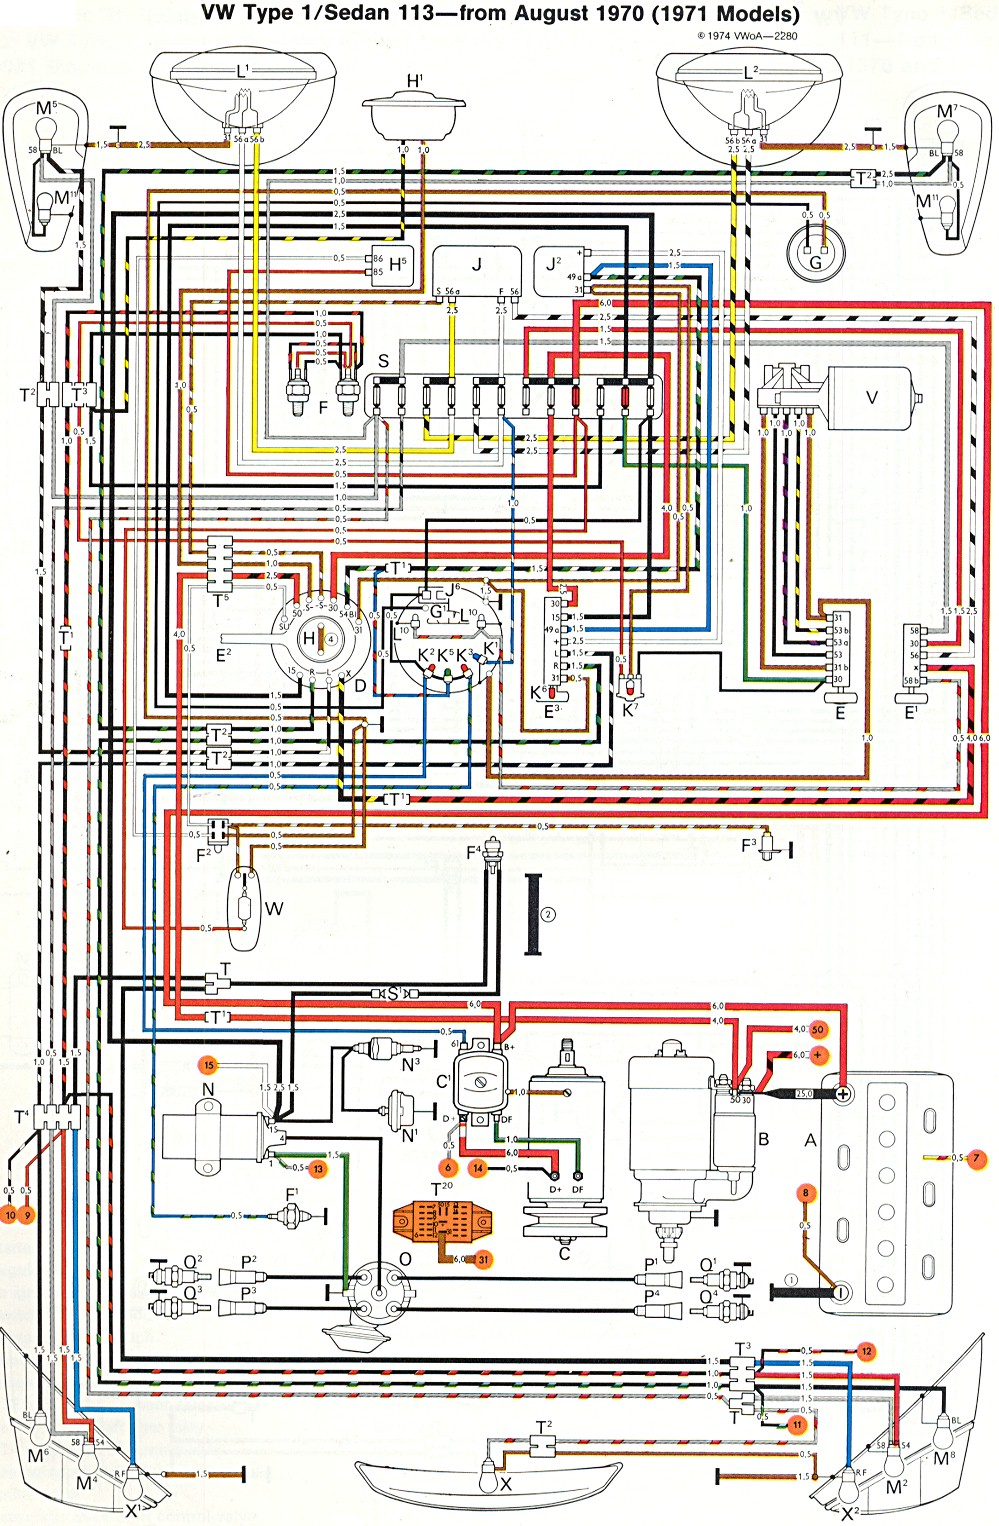 72 vw beetle wiring diagram wiring diagram rh blaknwyt co 73 vw bug wiring diagram 1974 VW Bus Wiring Diagram